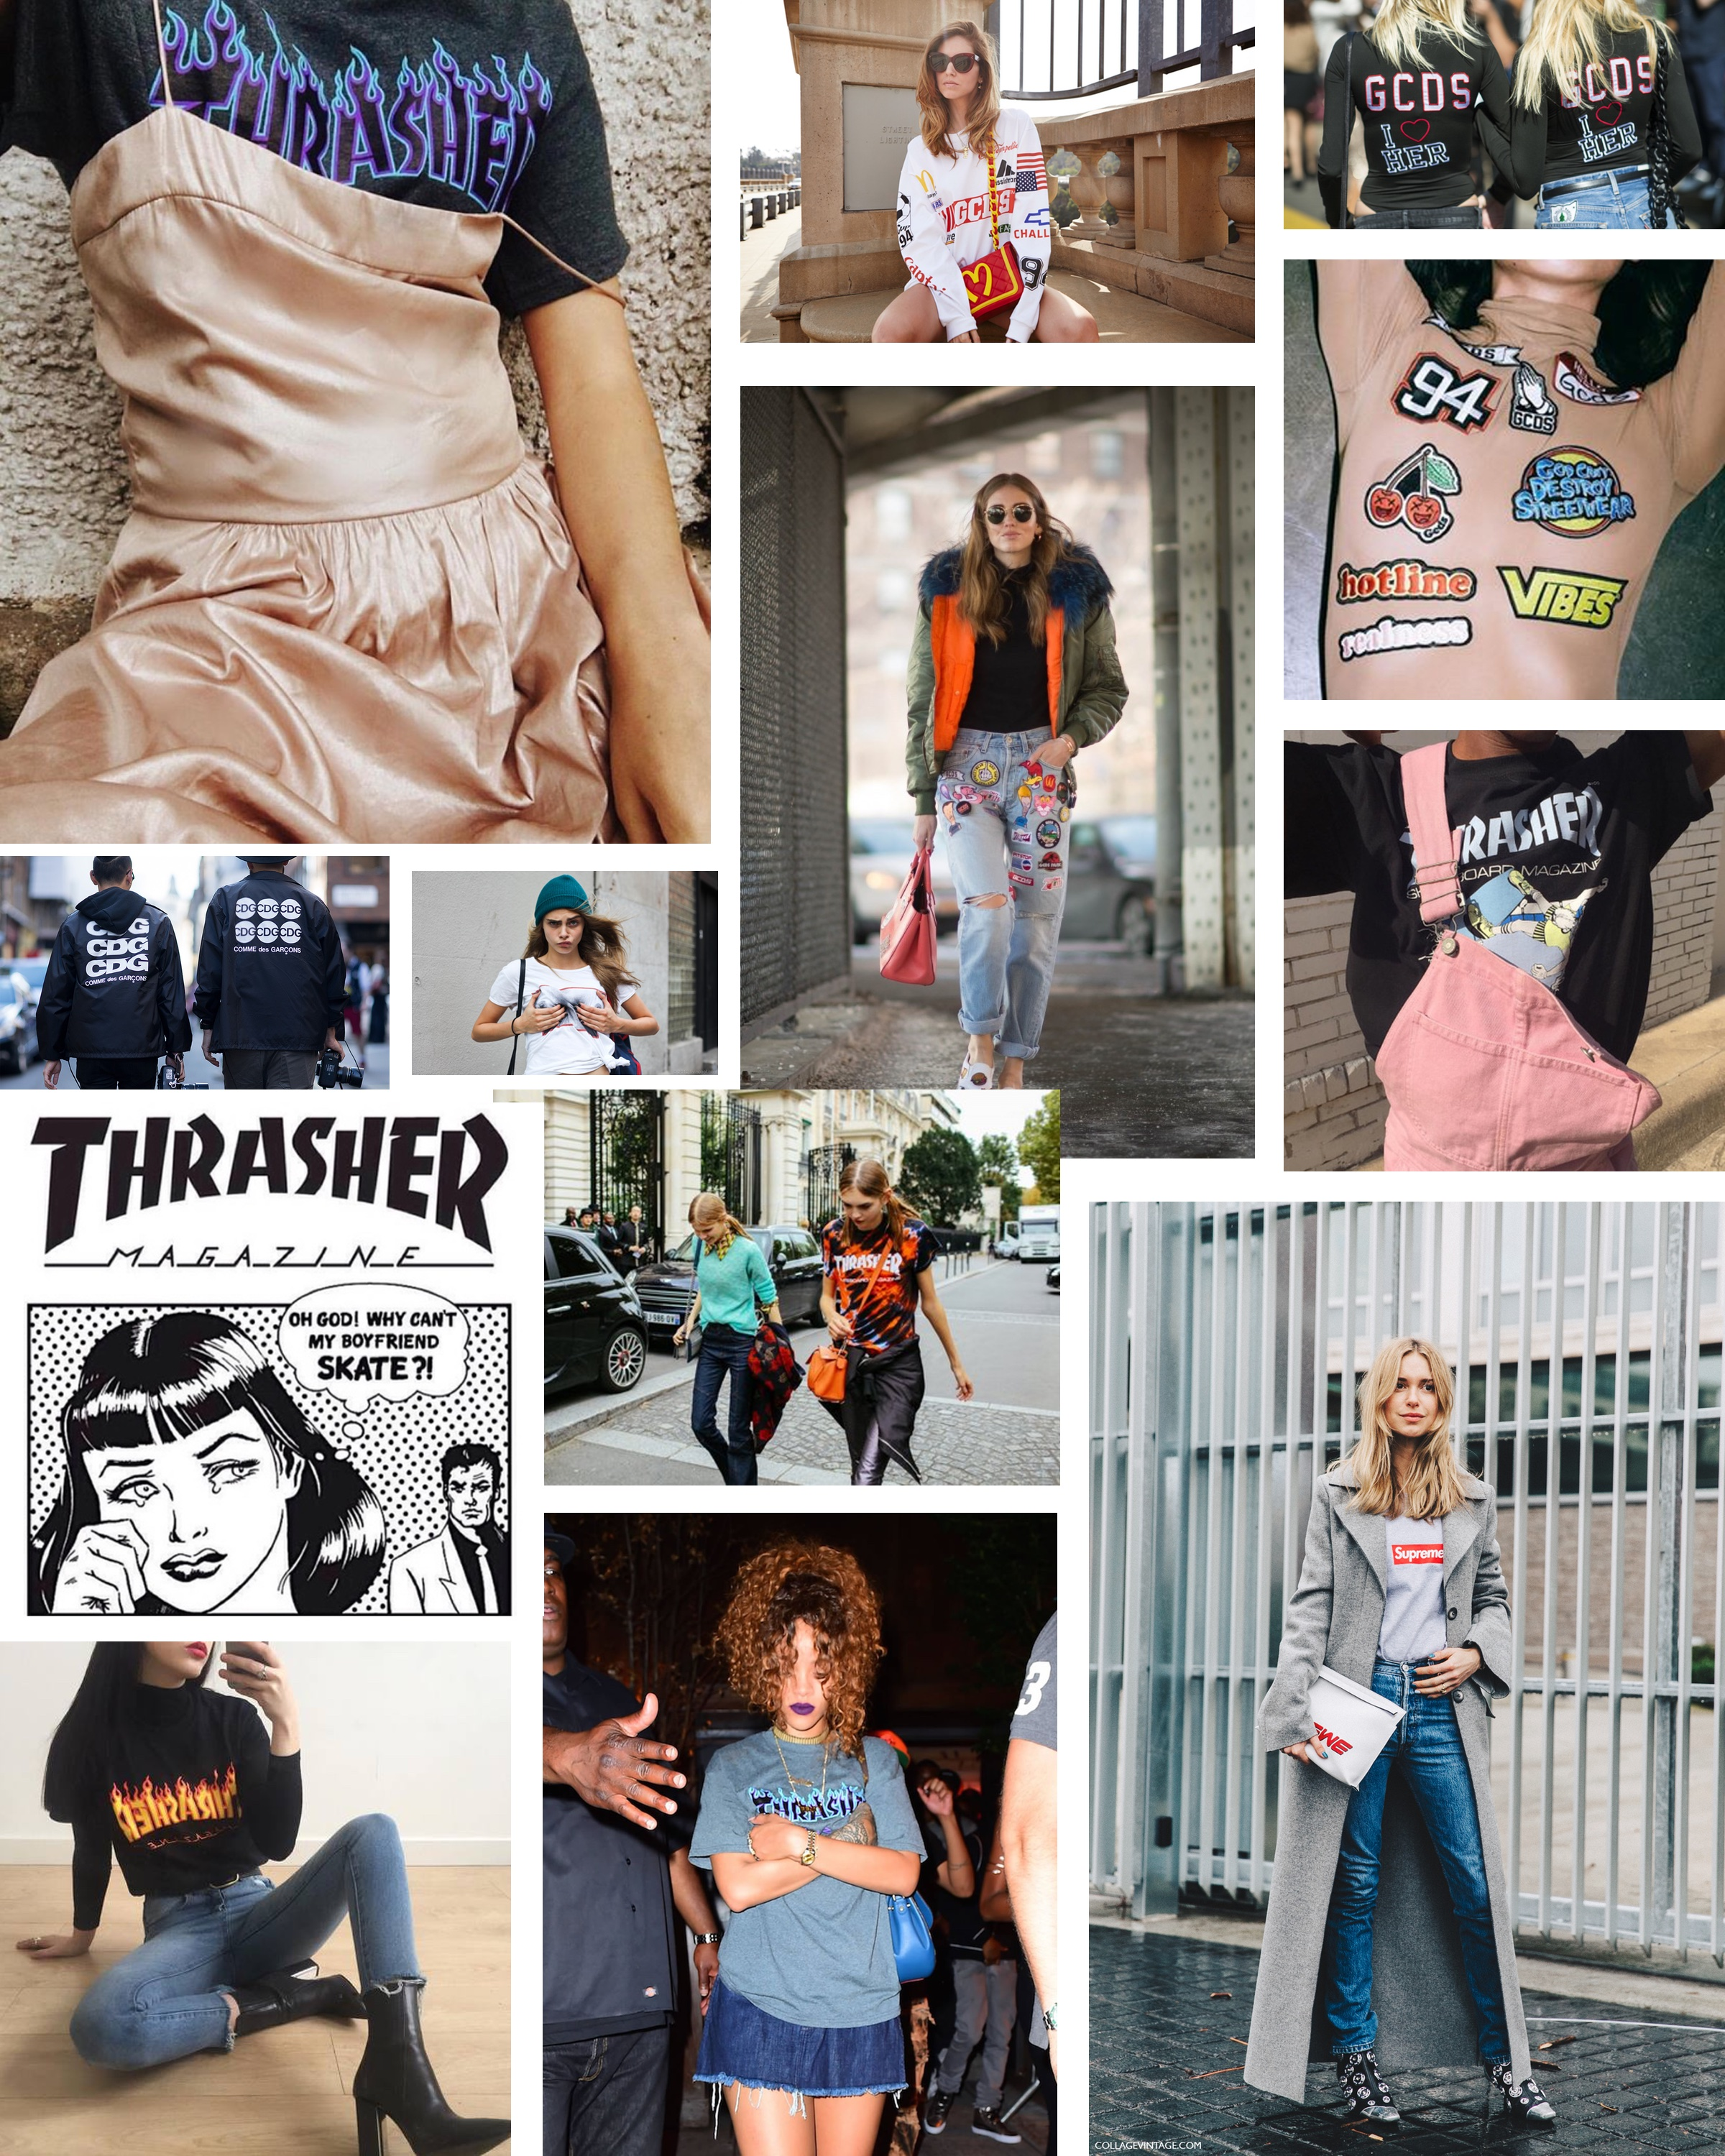 The Skate Trend, Thrasher Magazine Tshirts: To Style, With Love